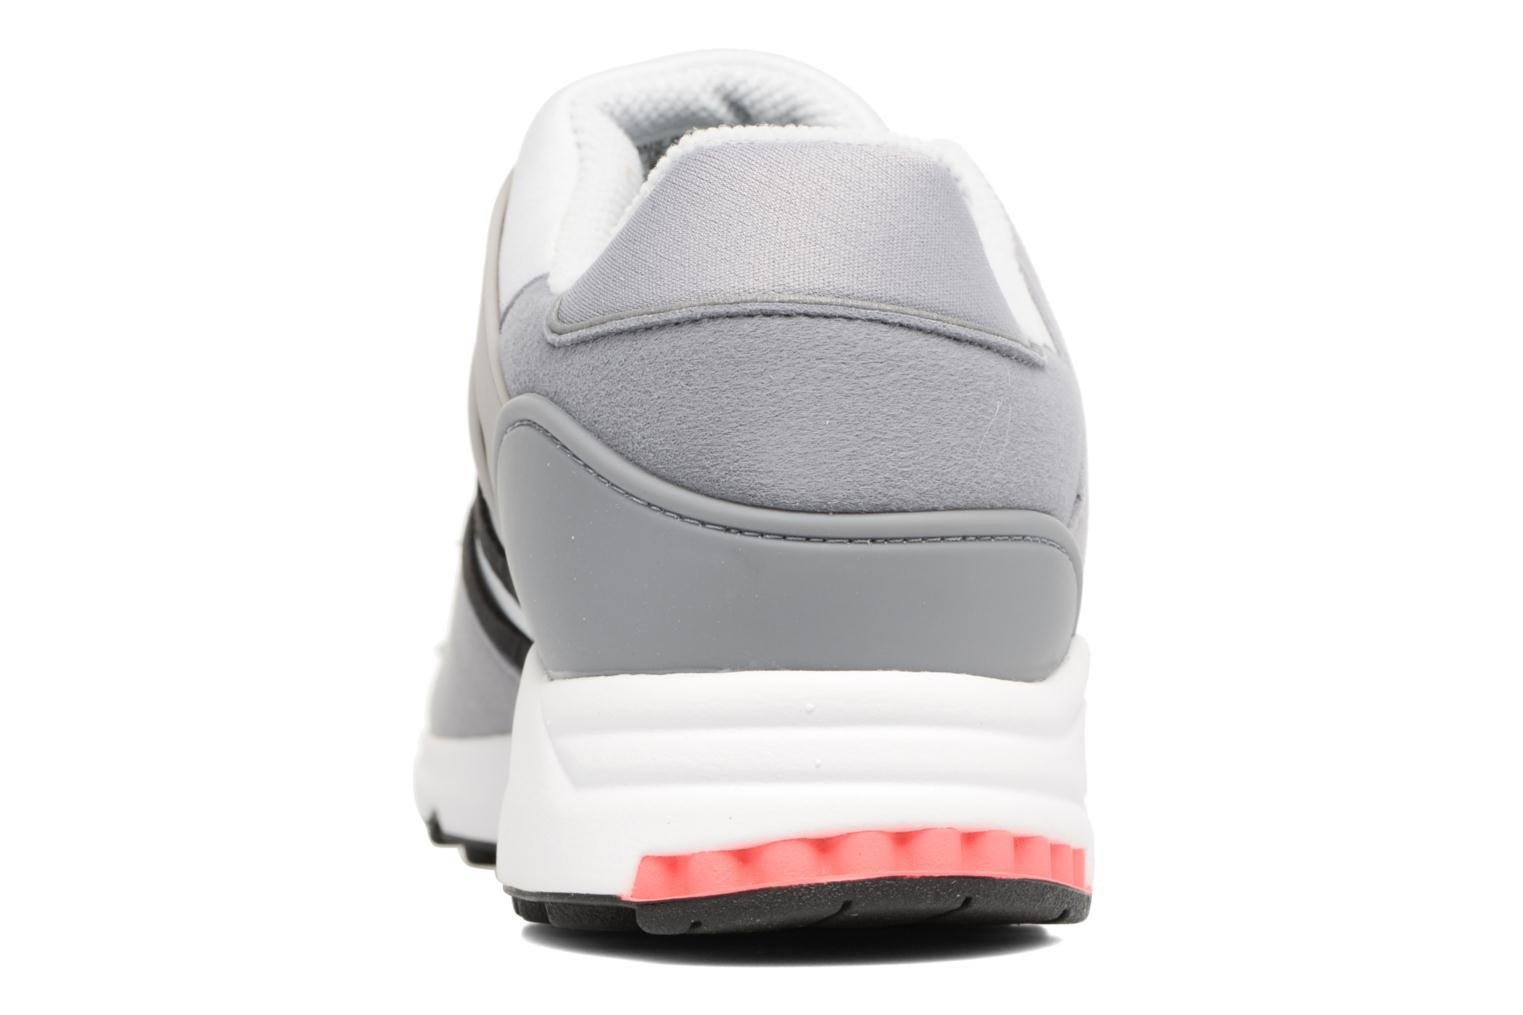 Eqt Support Rf Onypal/Noiess/Gris